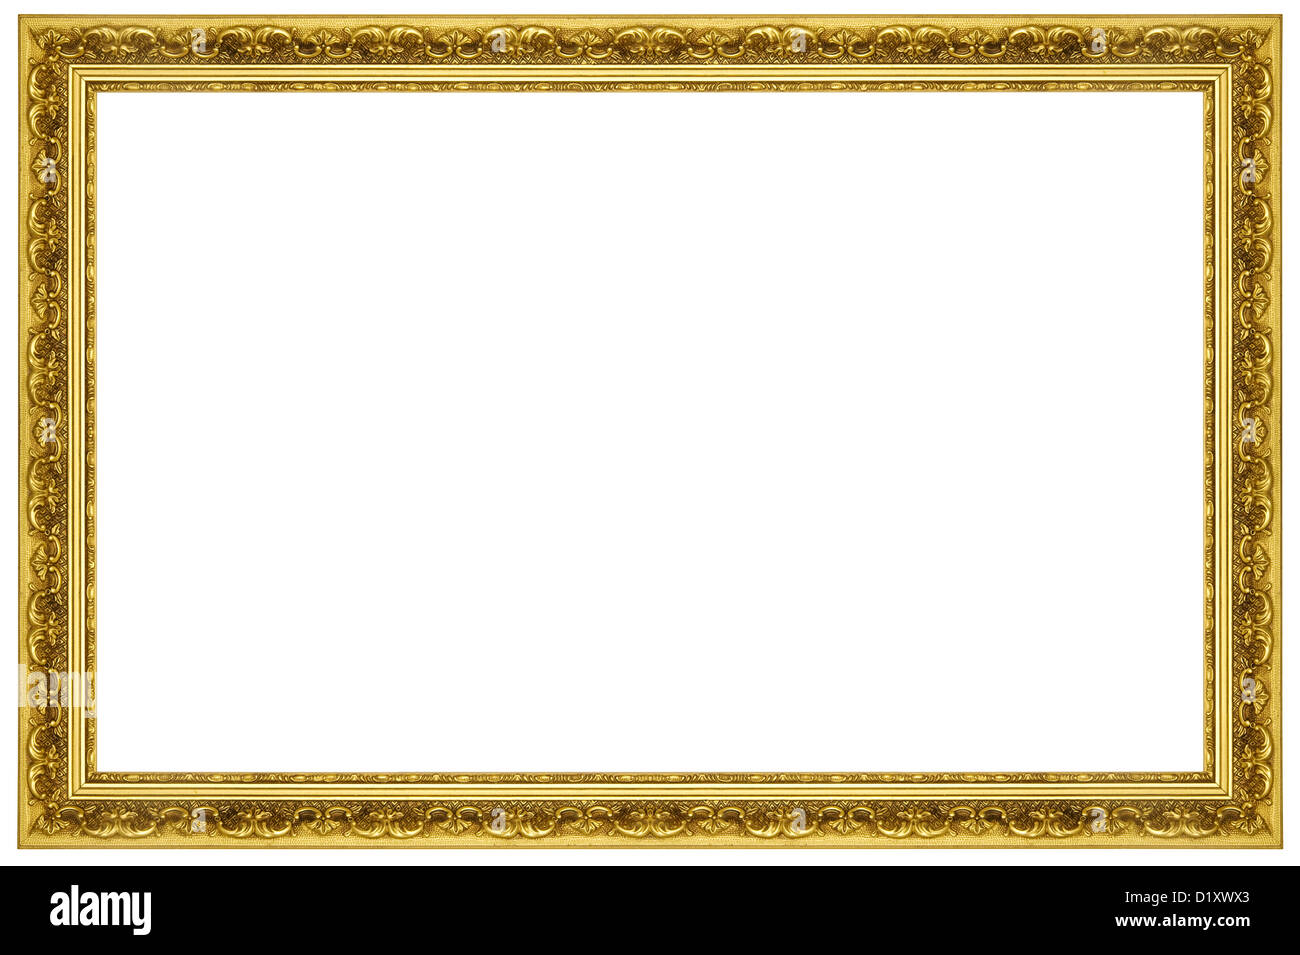 Antique Gold Frame Pattern Isolated On White Background Stock Photo